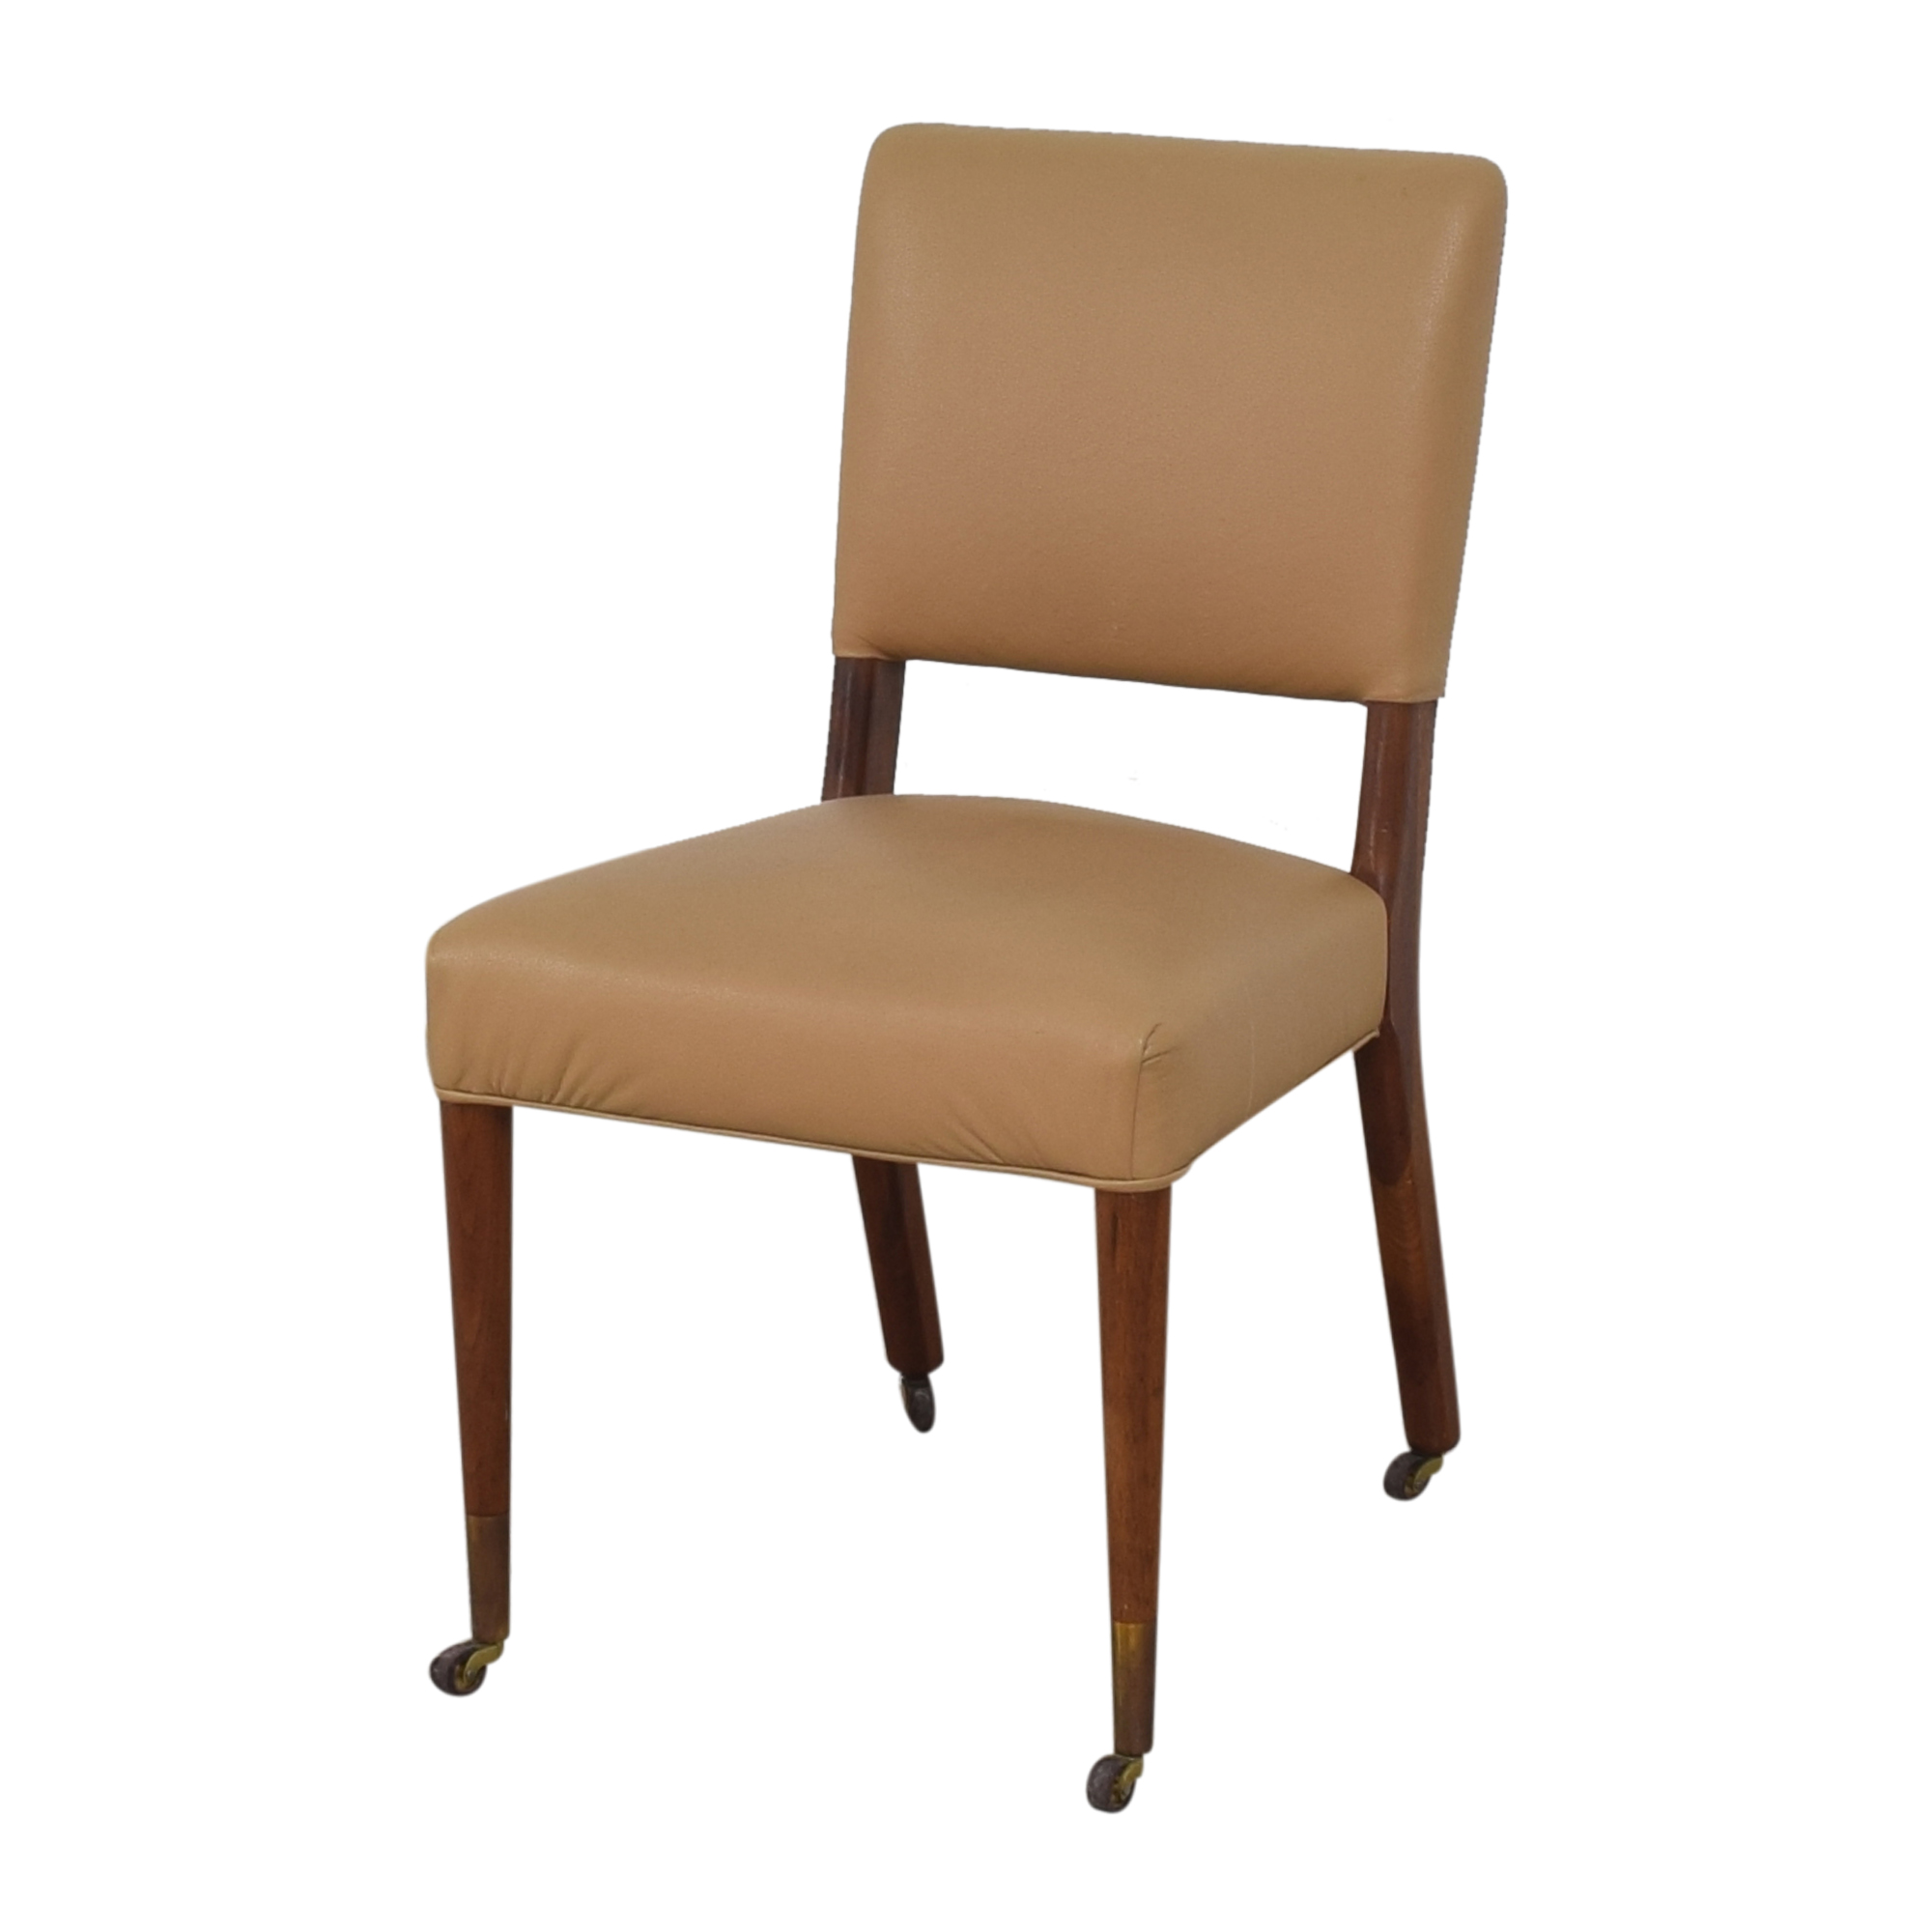 Upholstered Dining Chairs on Casters